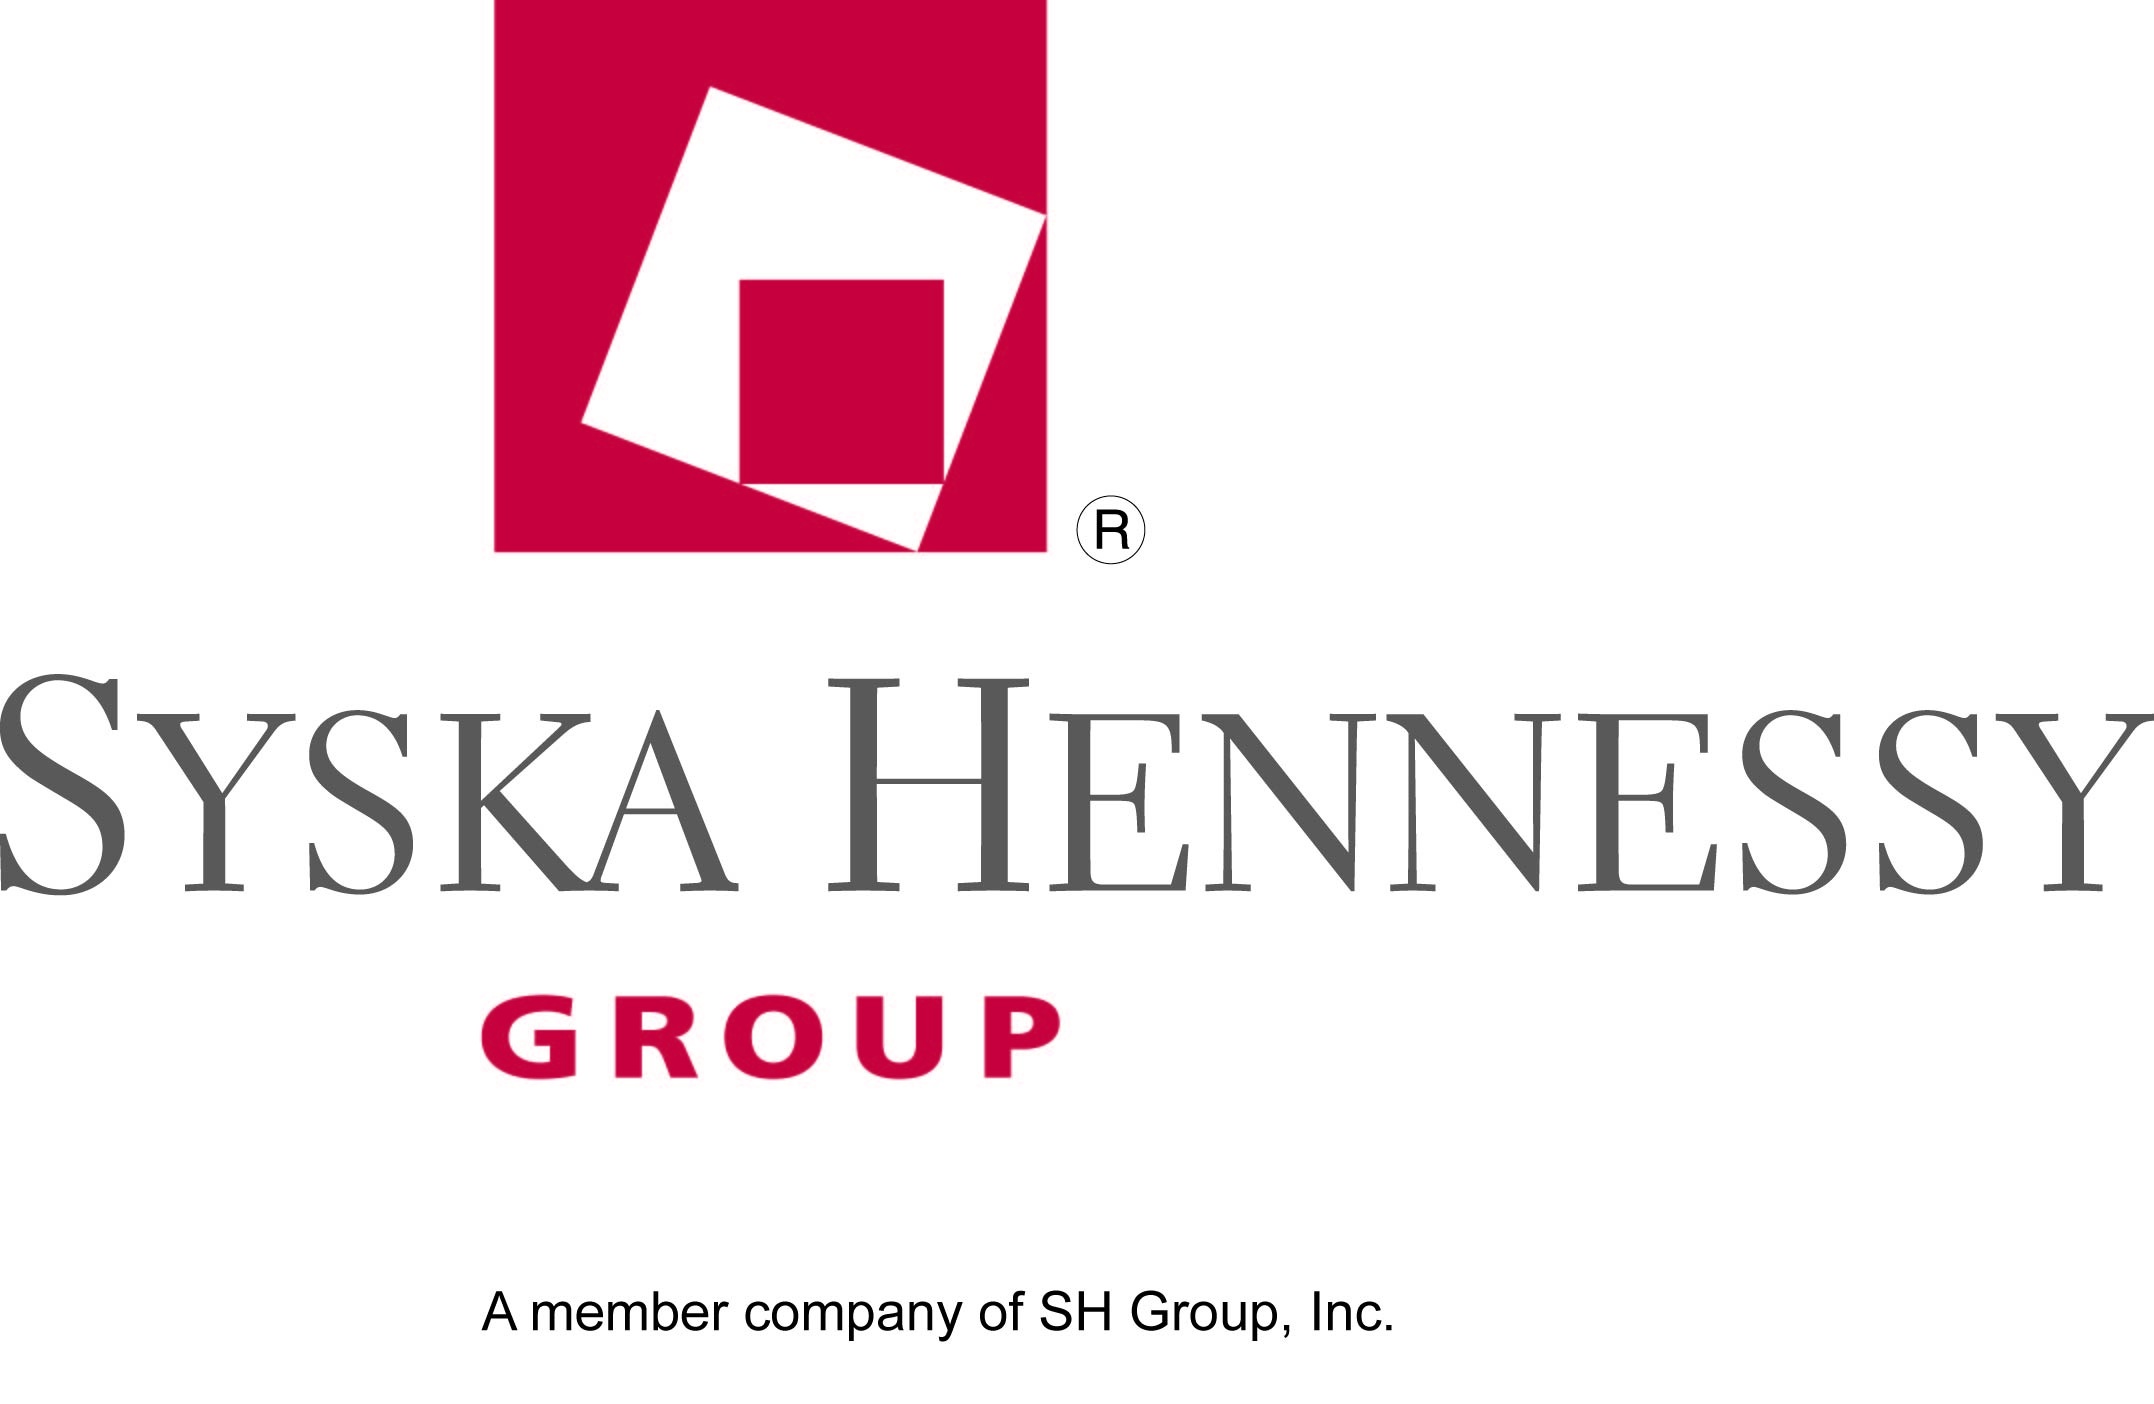 Syska Hennessy Group, Inc.